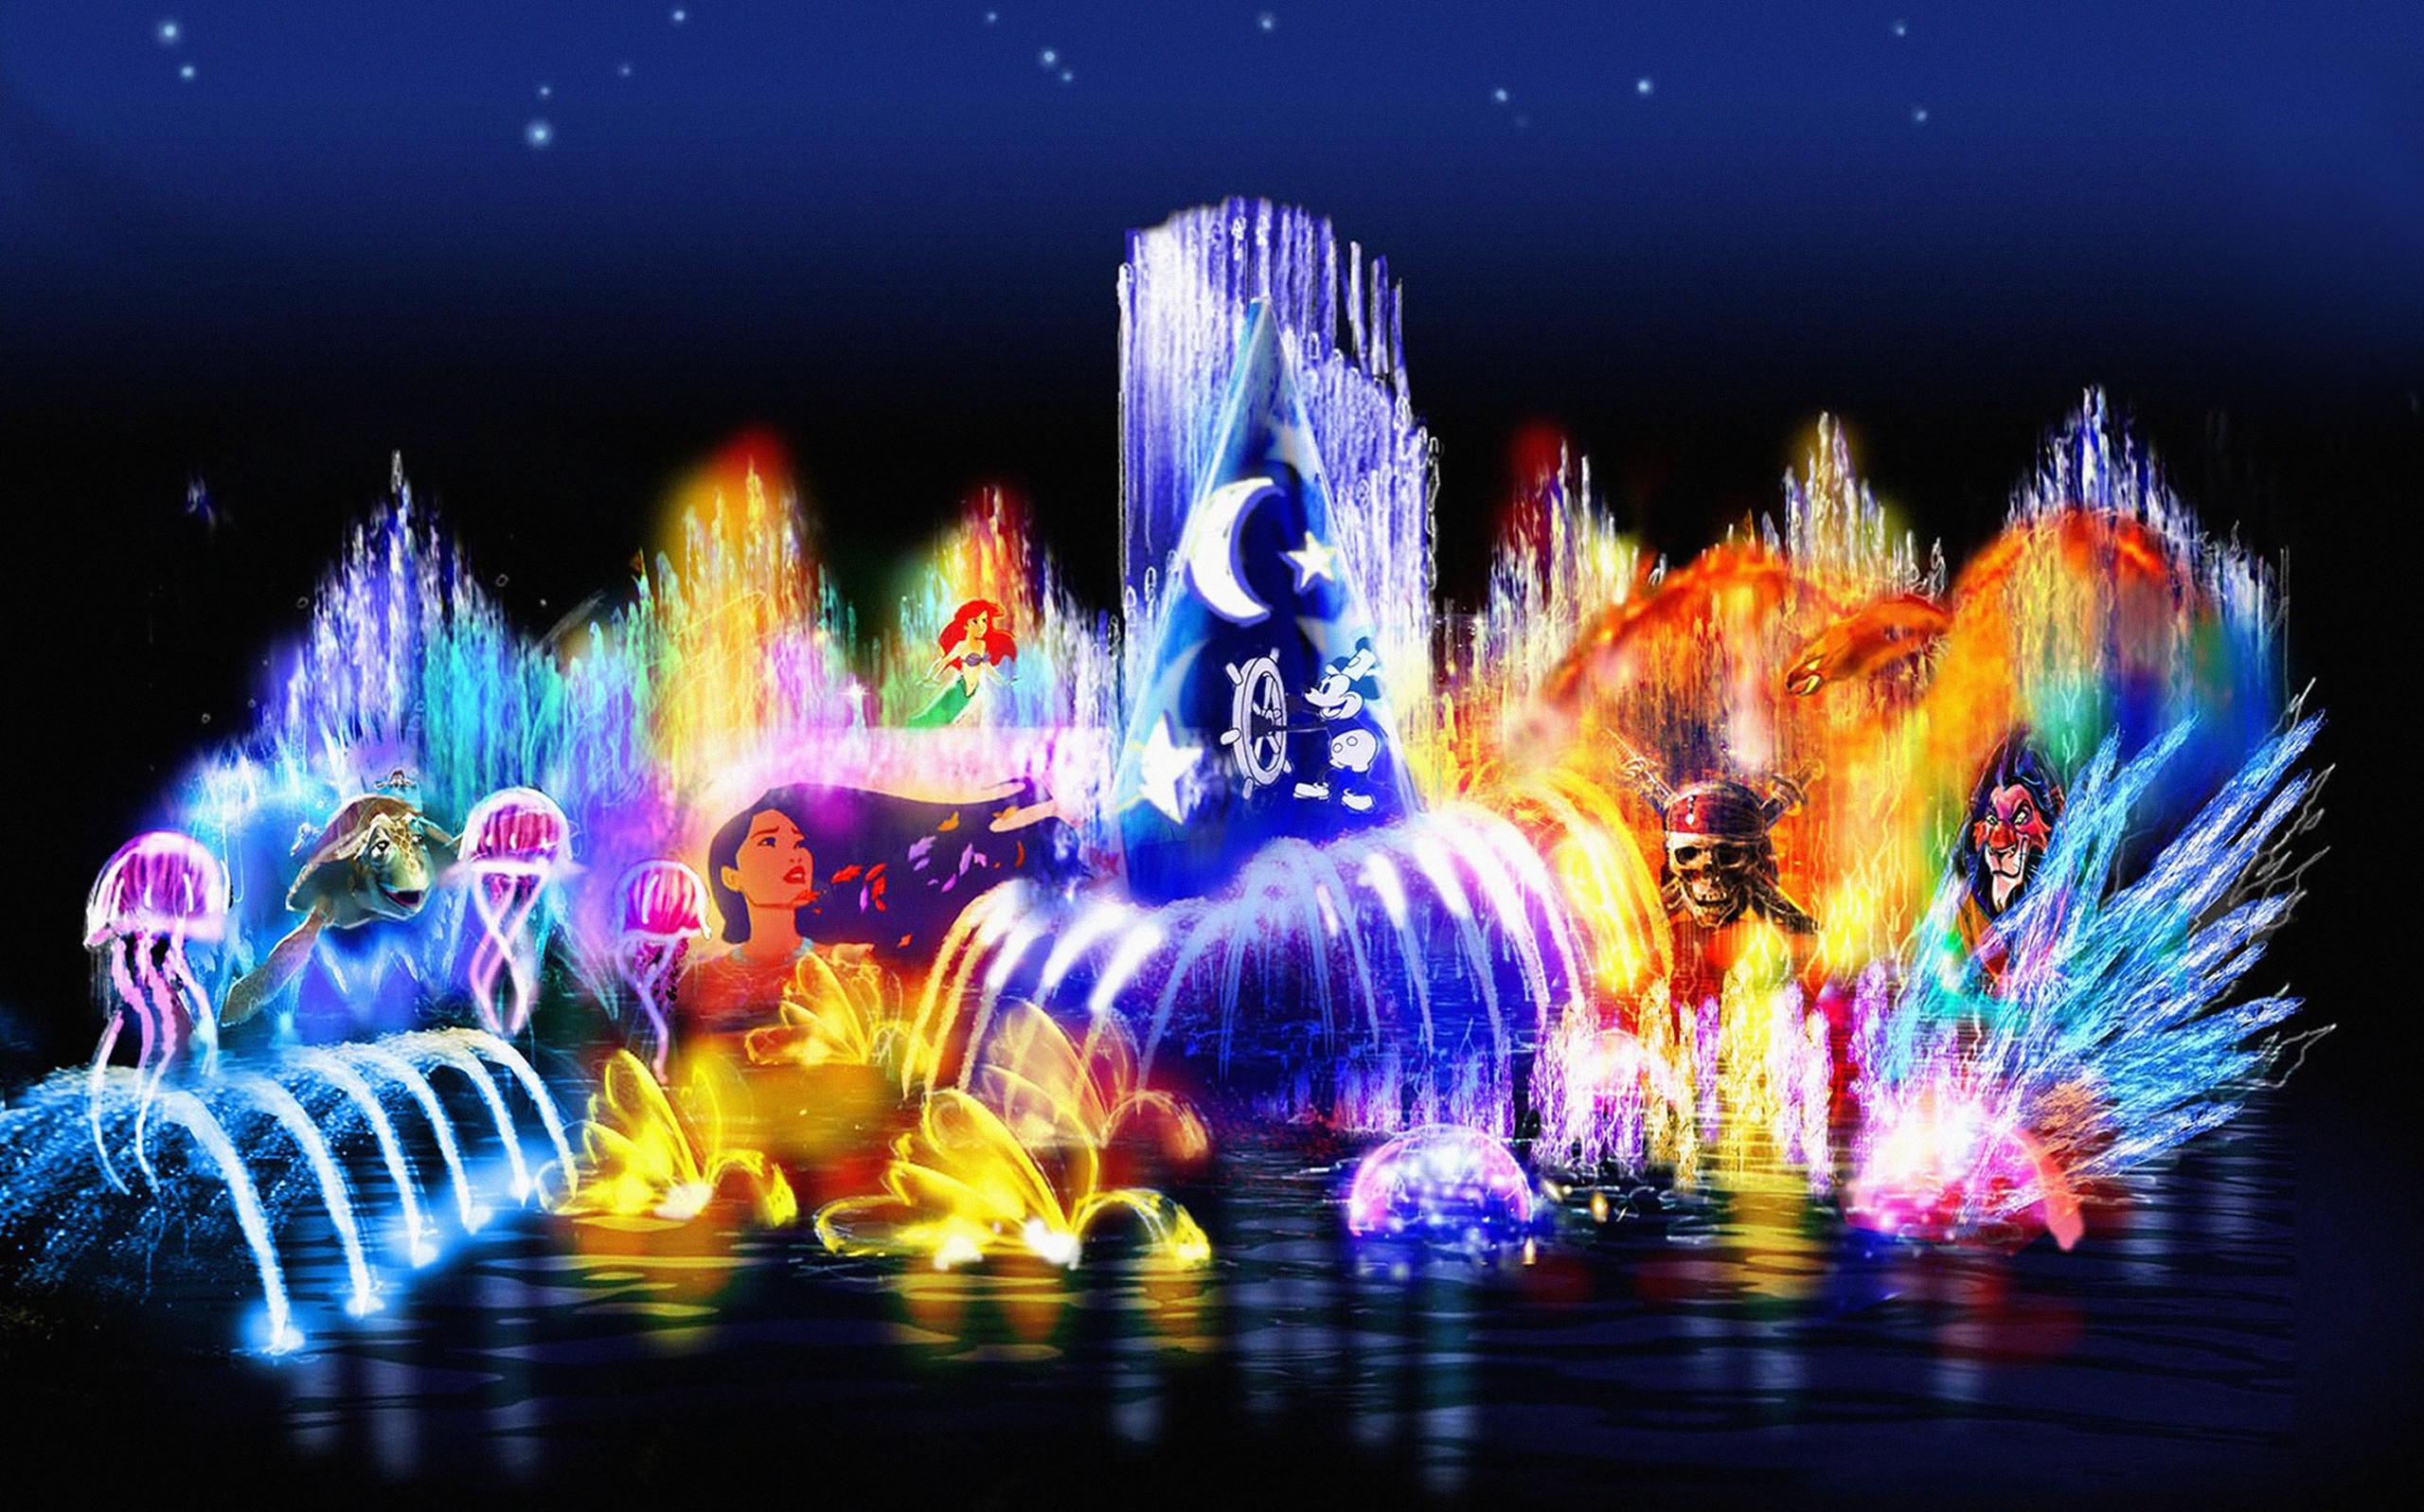 2560x1597 Colorful Disney Backgrounds 19106